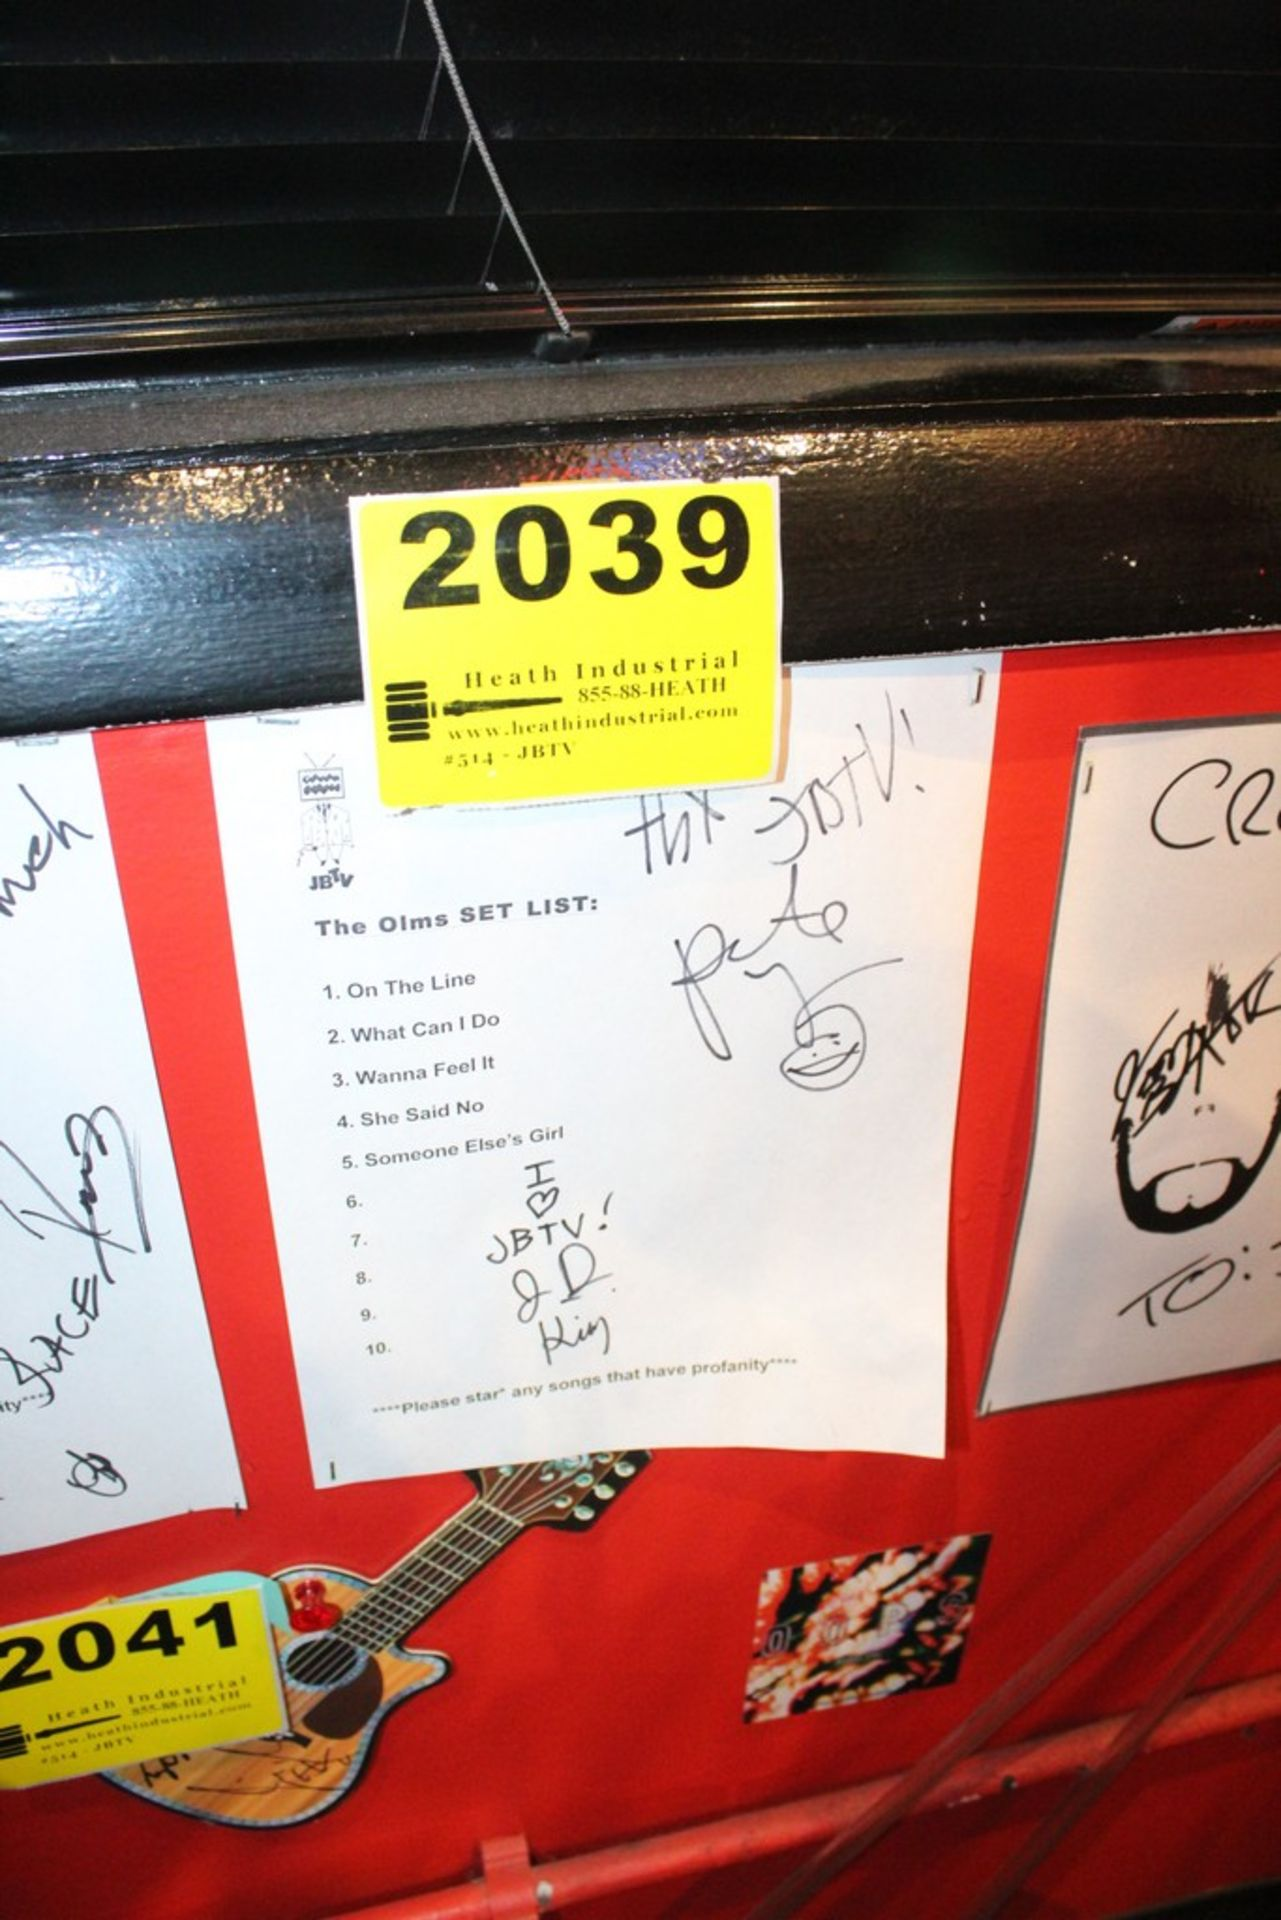 Lot 2039 - The Olms Signed Set List